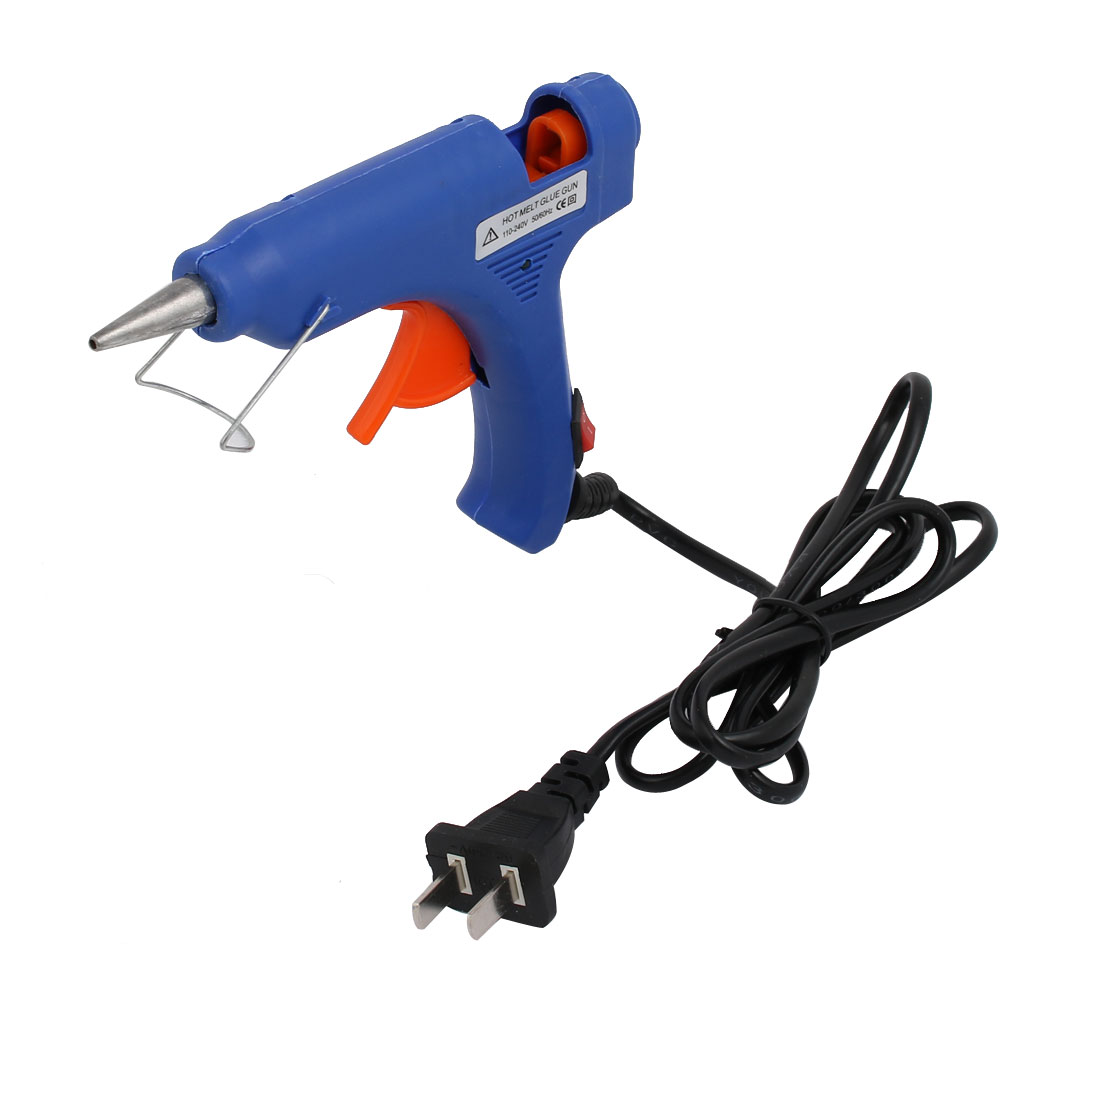 Unique Bargains AC110V-240V 20W Electric Heating Hot Melt Glue  US Plug Repair Tool Blue